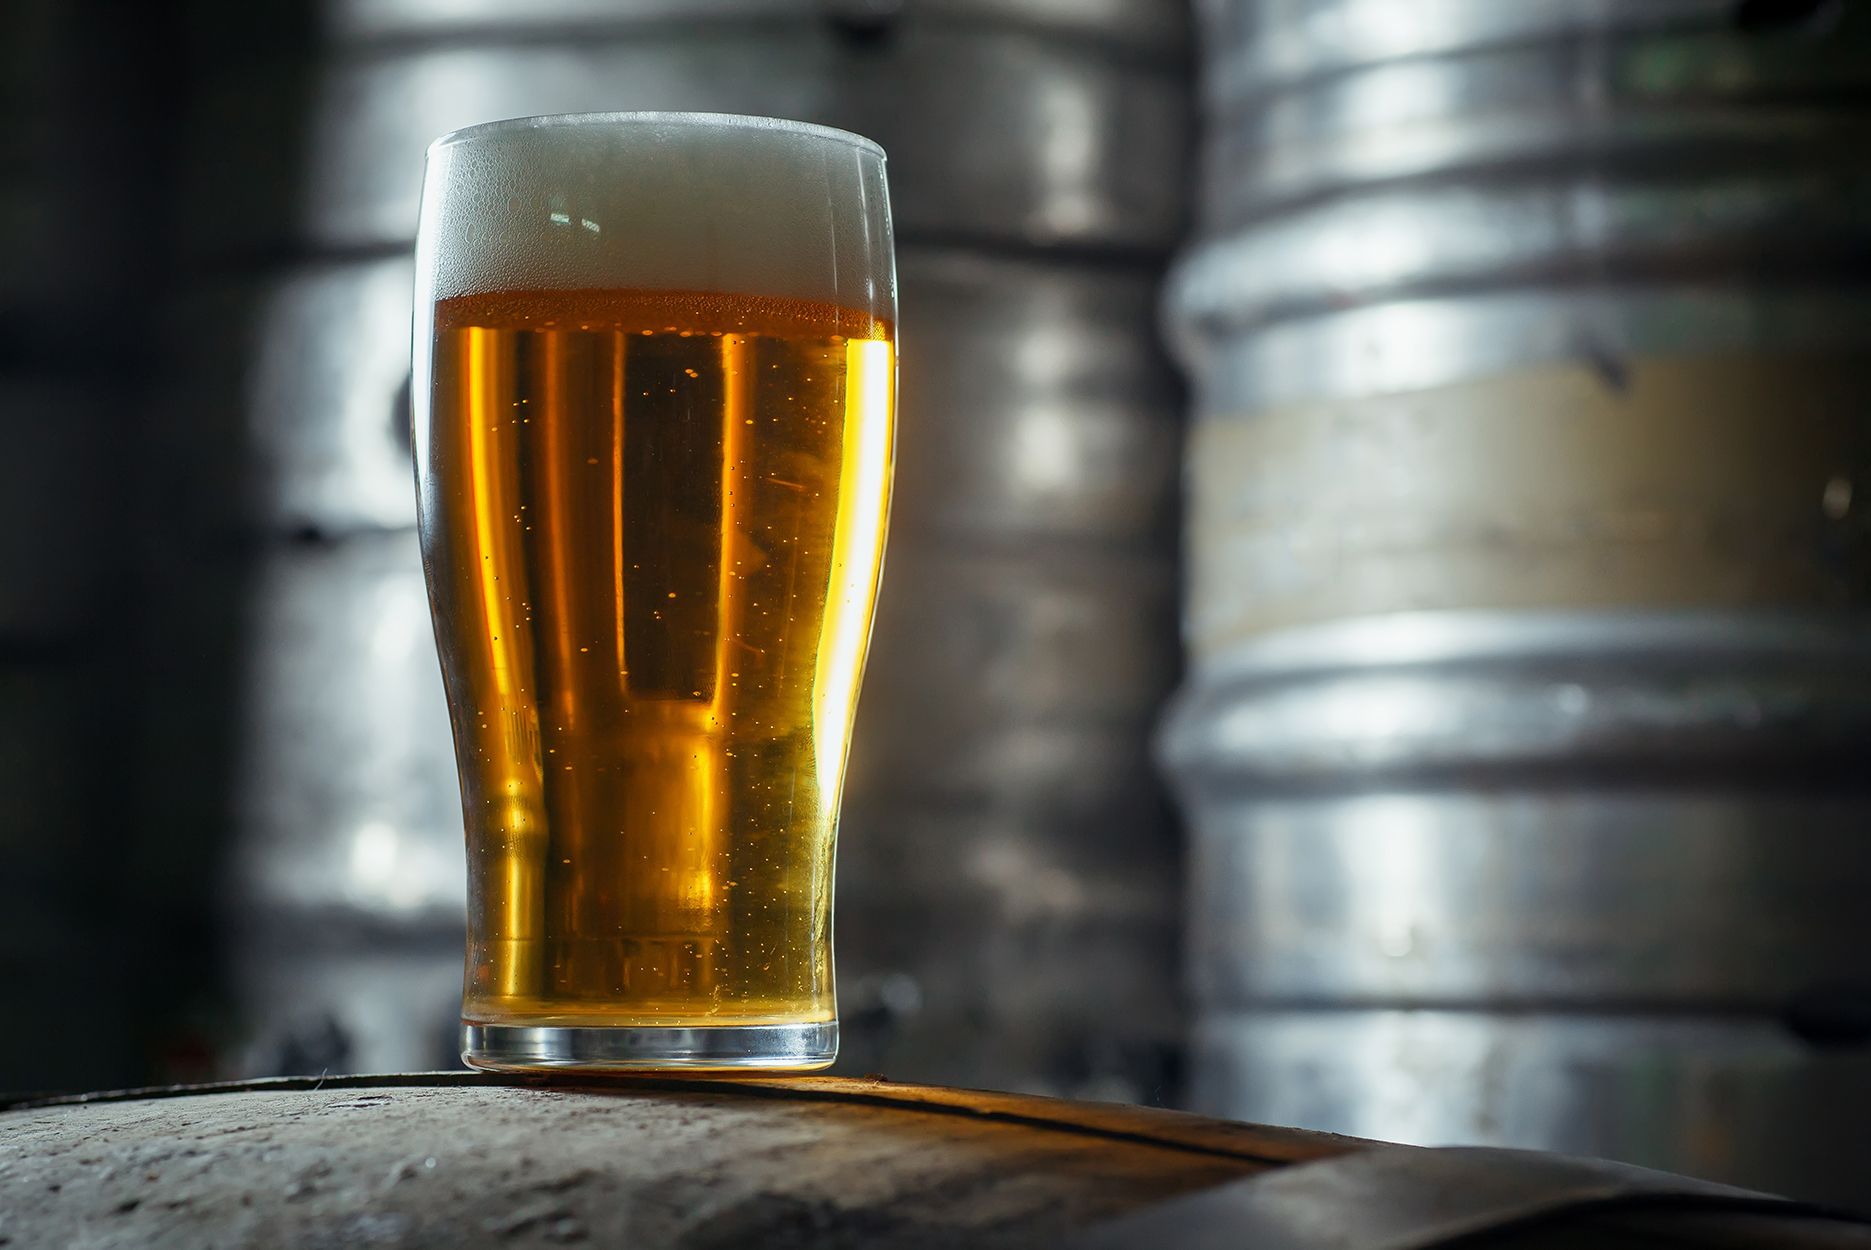 Glass full of light beer standing on top of a wooden barrel in a brewery with stainless steel kegs in the background